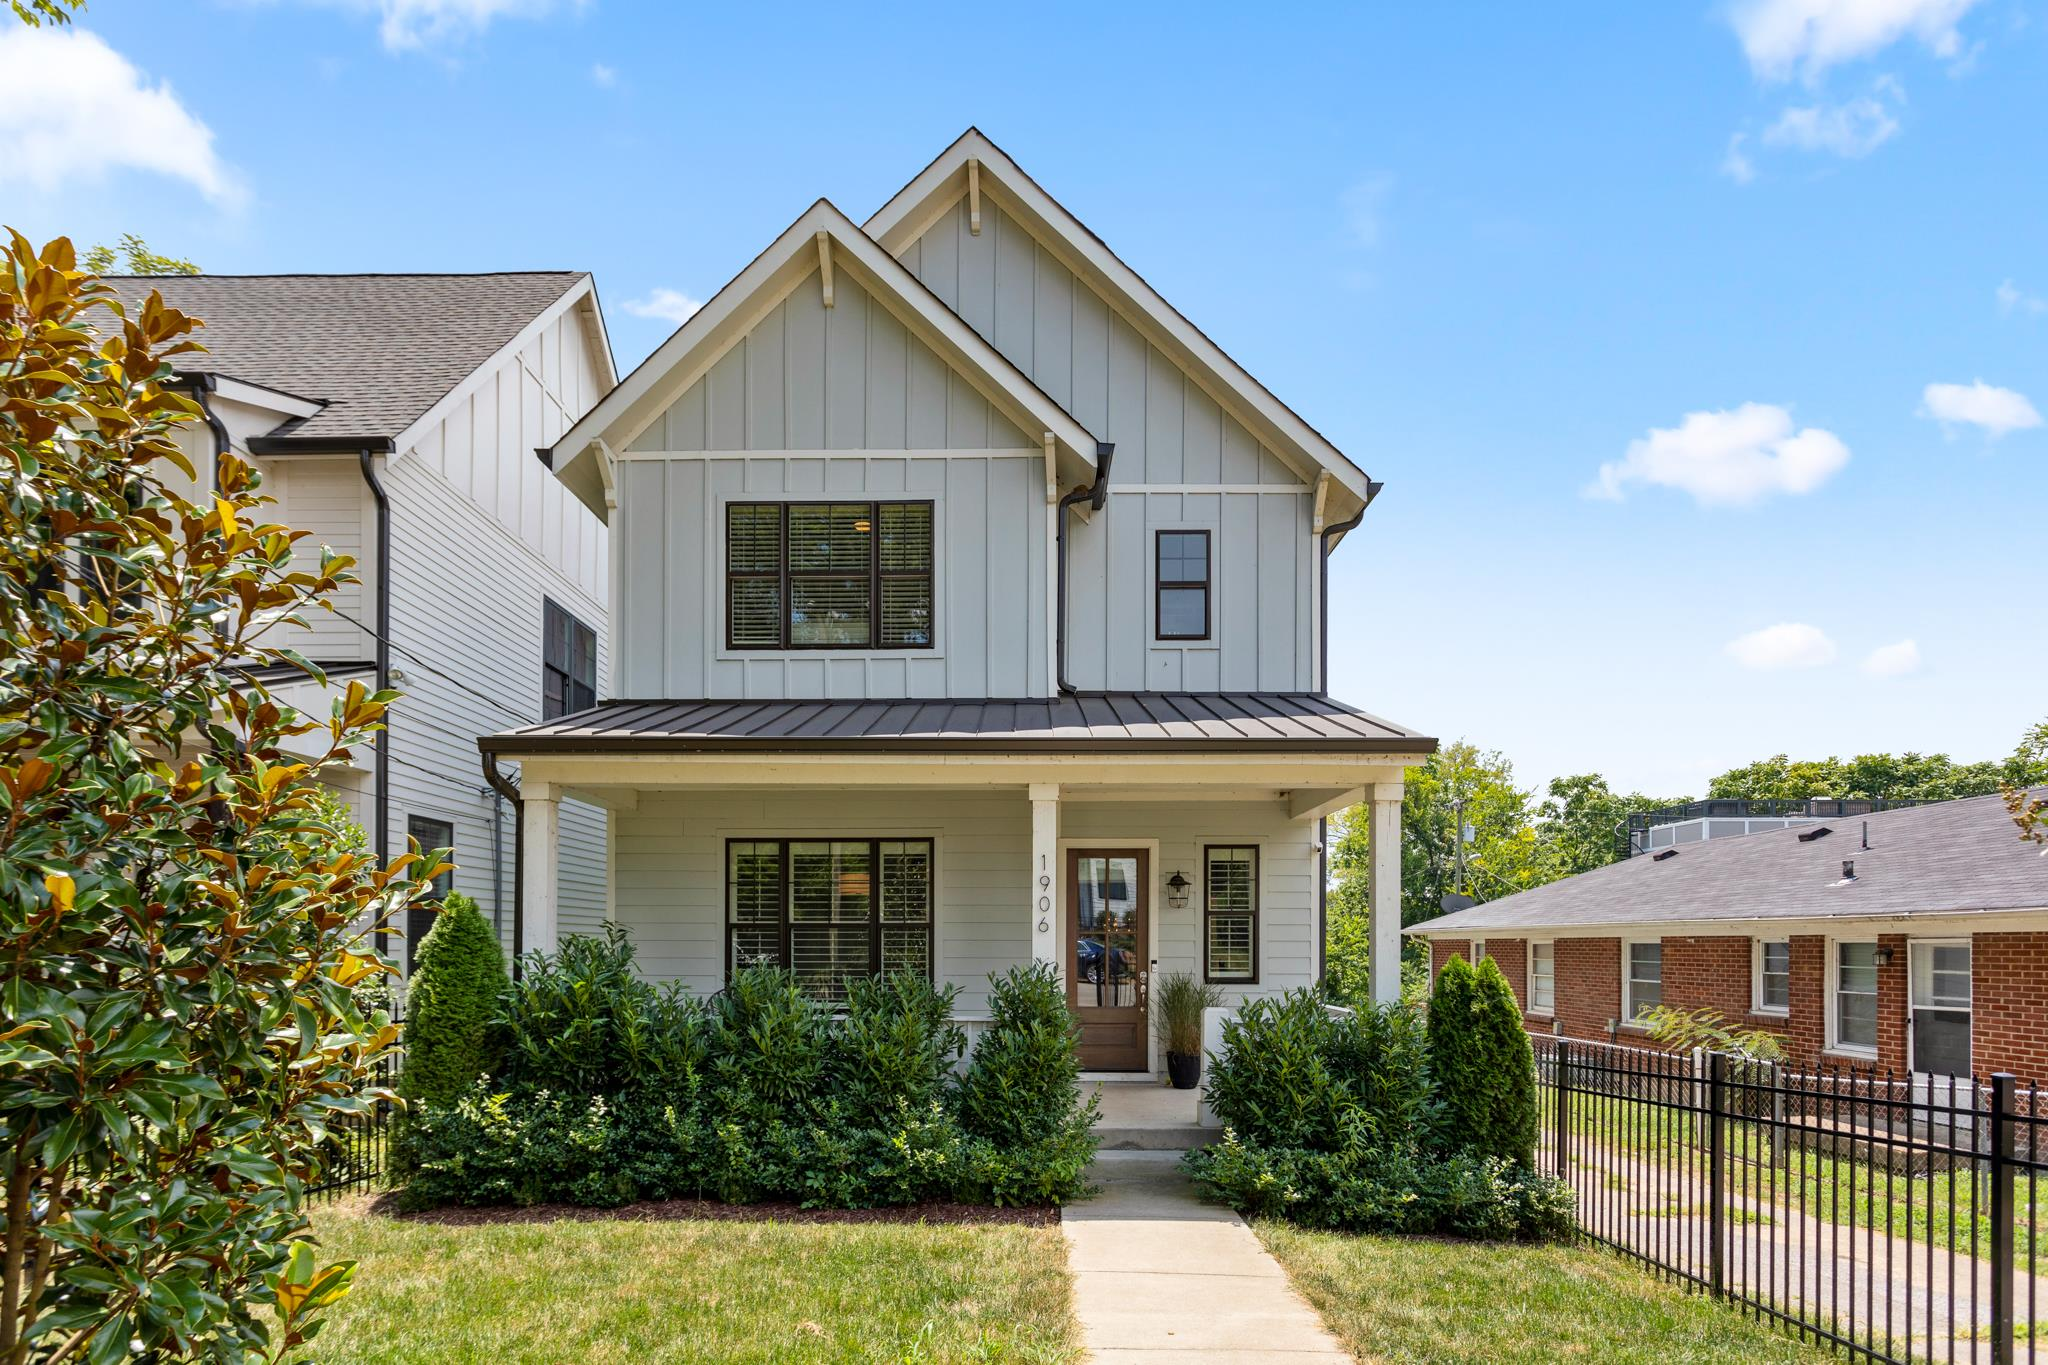 1906 Electric Ave, Nashville, TN 37206 - Nashville, TN real estate listing